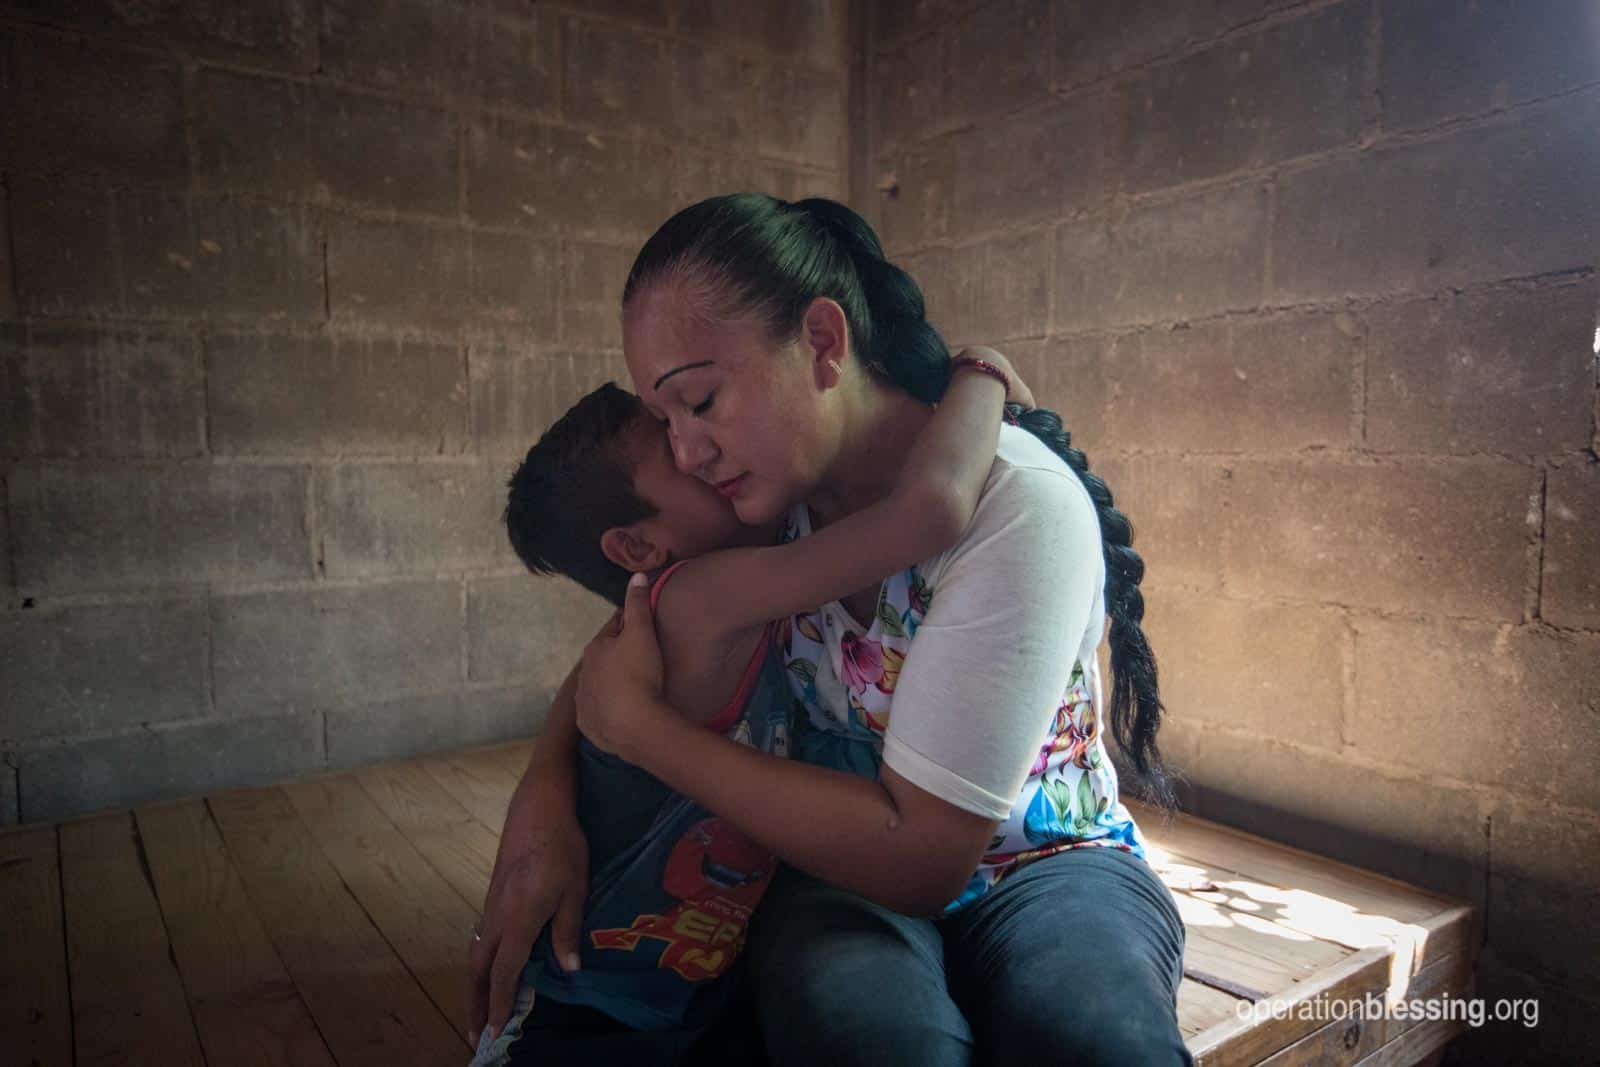 Angel's mother comforts him with a hug after they lost much in a flood in Mexico.